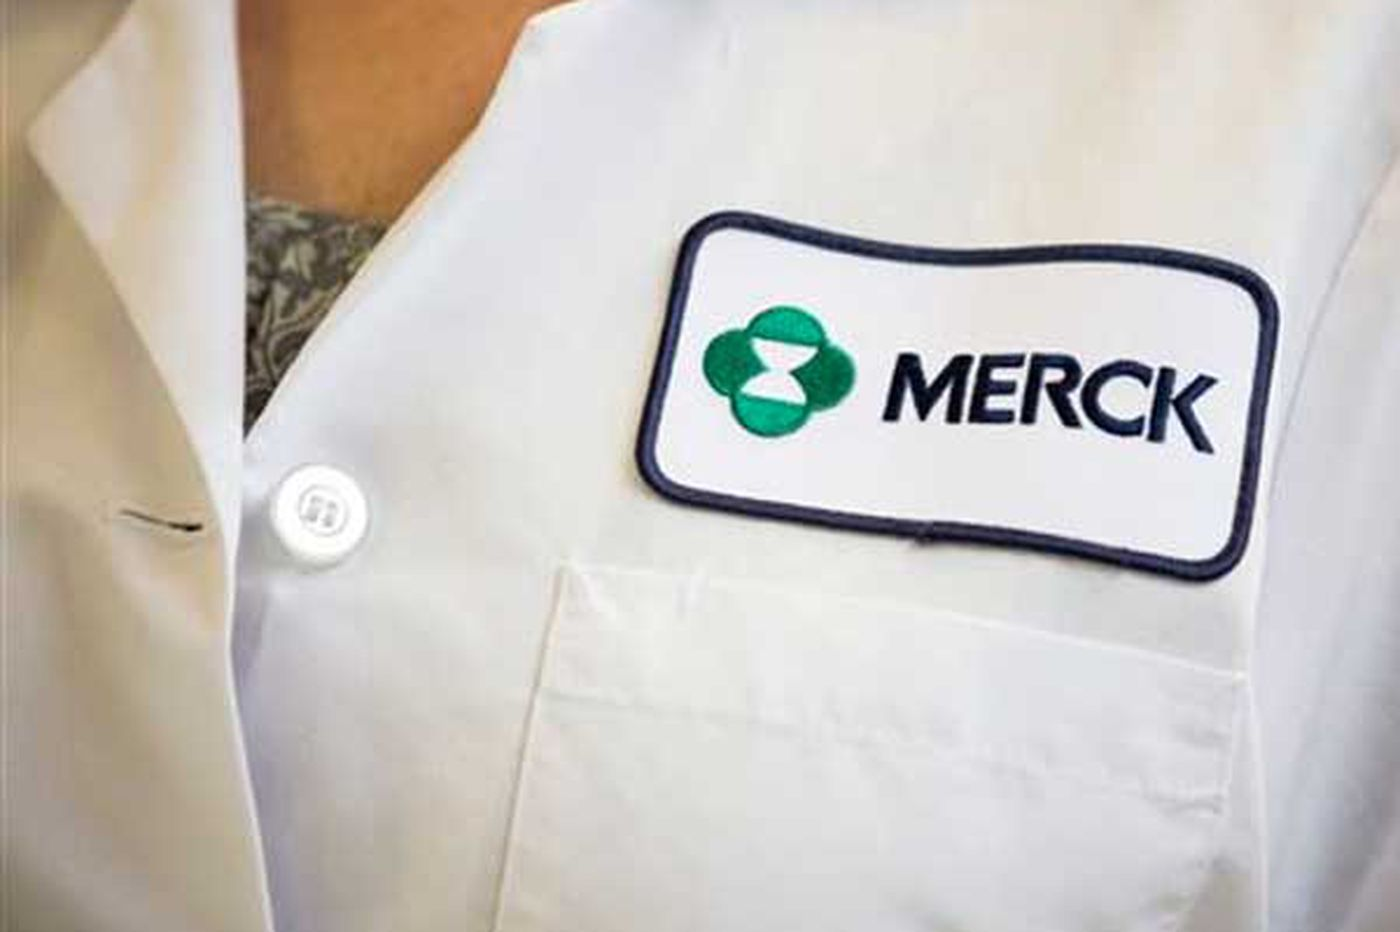 Sales rep sues Merck, alleges sex discrimination